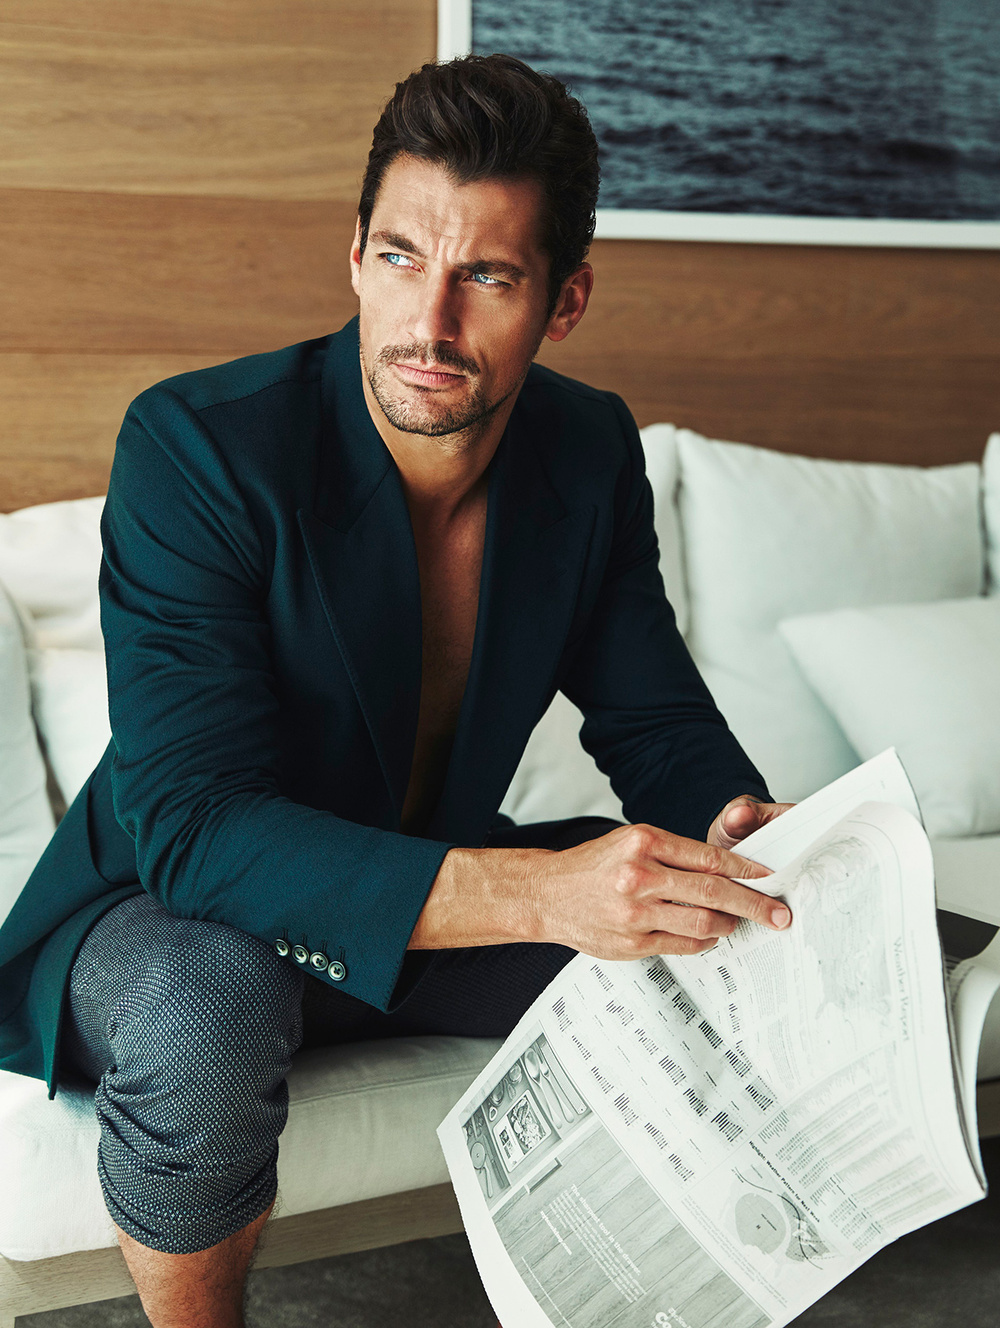 20150711_JR_DavidGandy_0391B_web.jpg